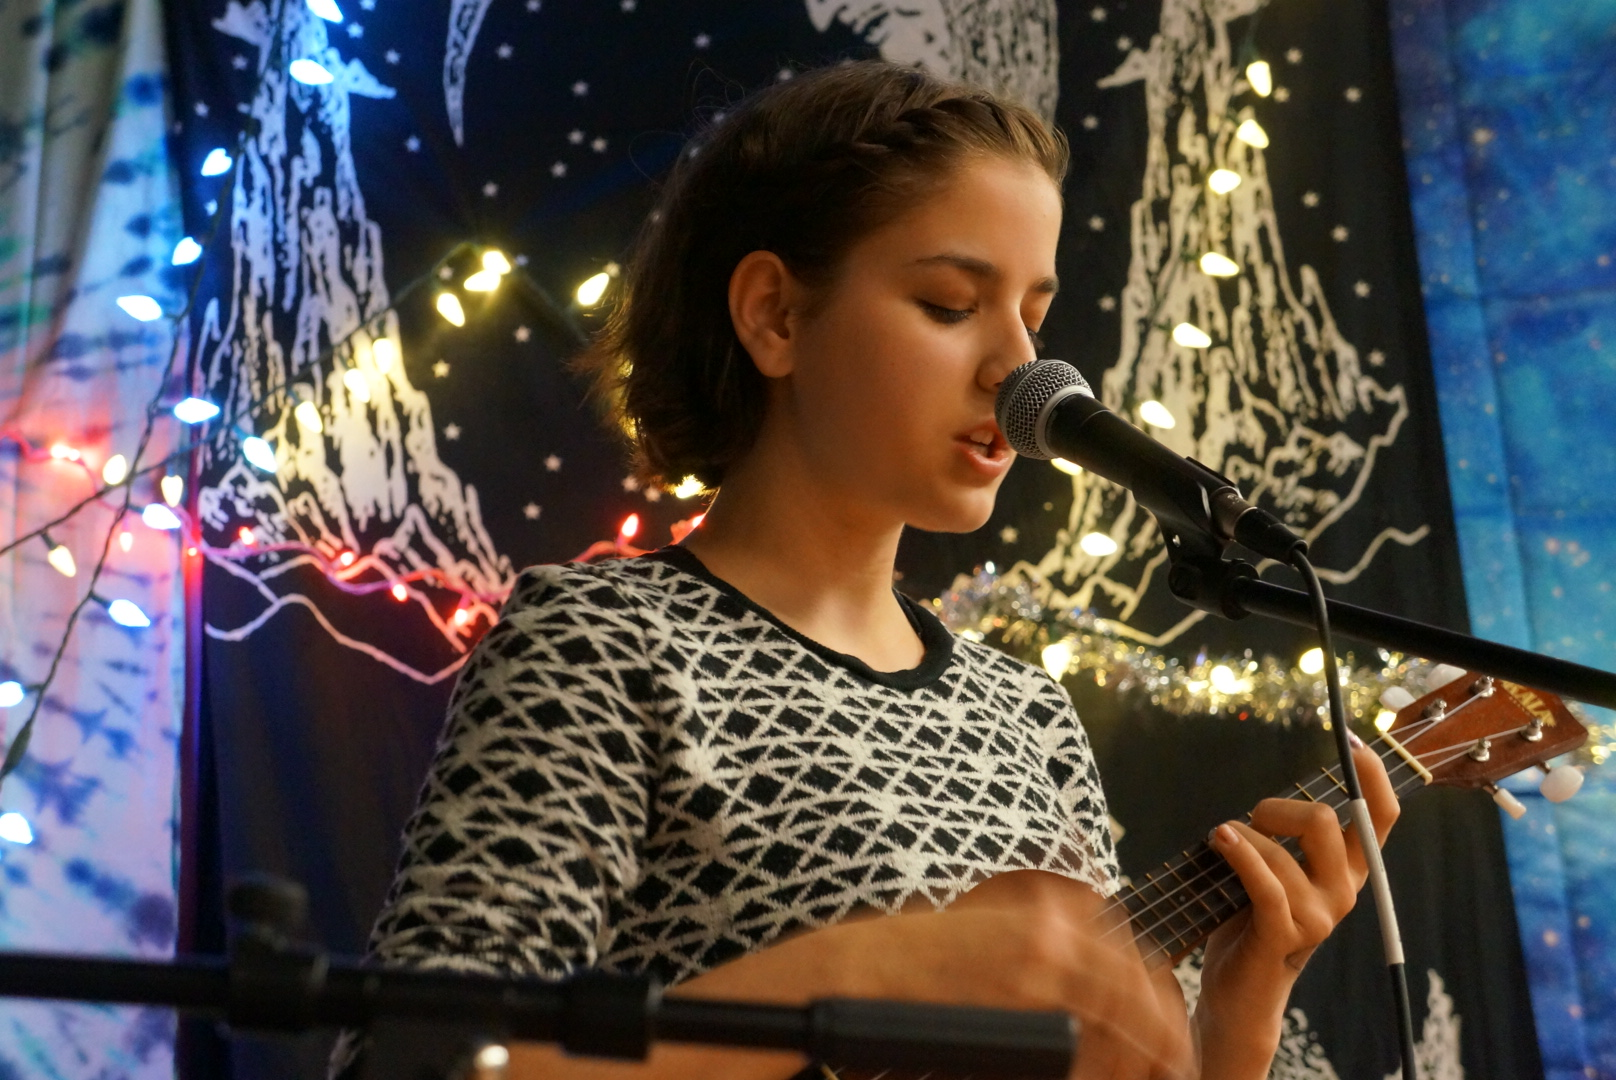 Ris Igrec performed multiple songs on her ukulele and piano.